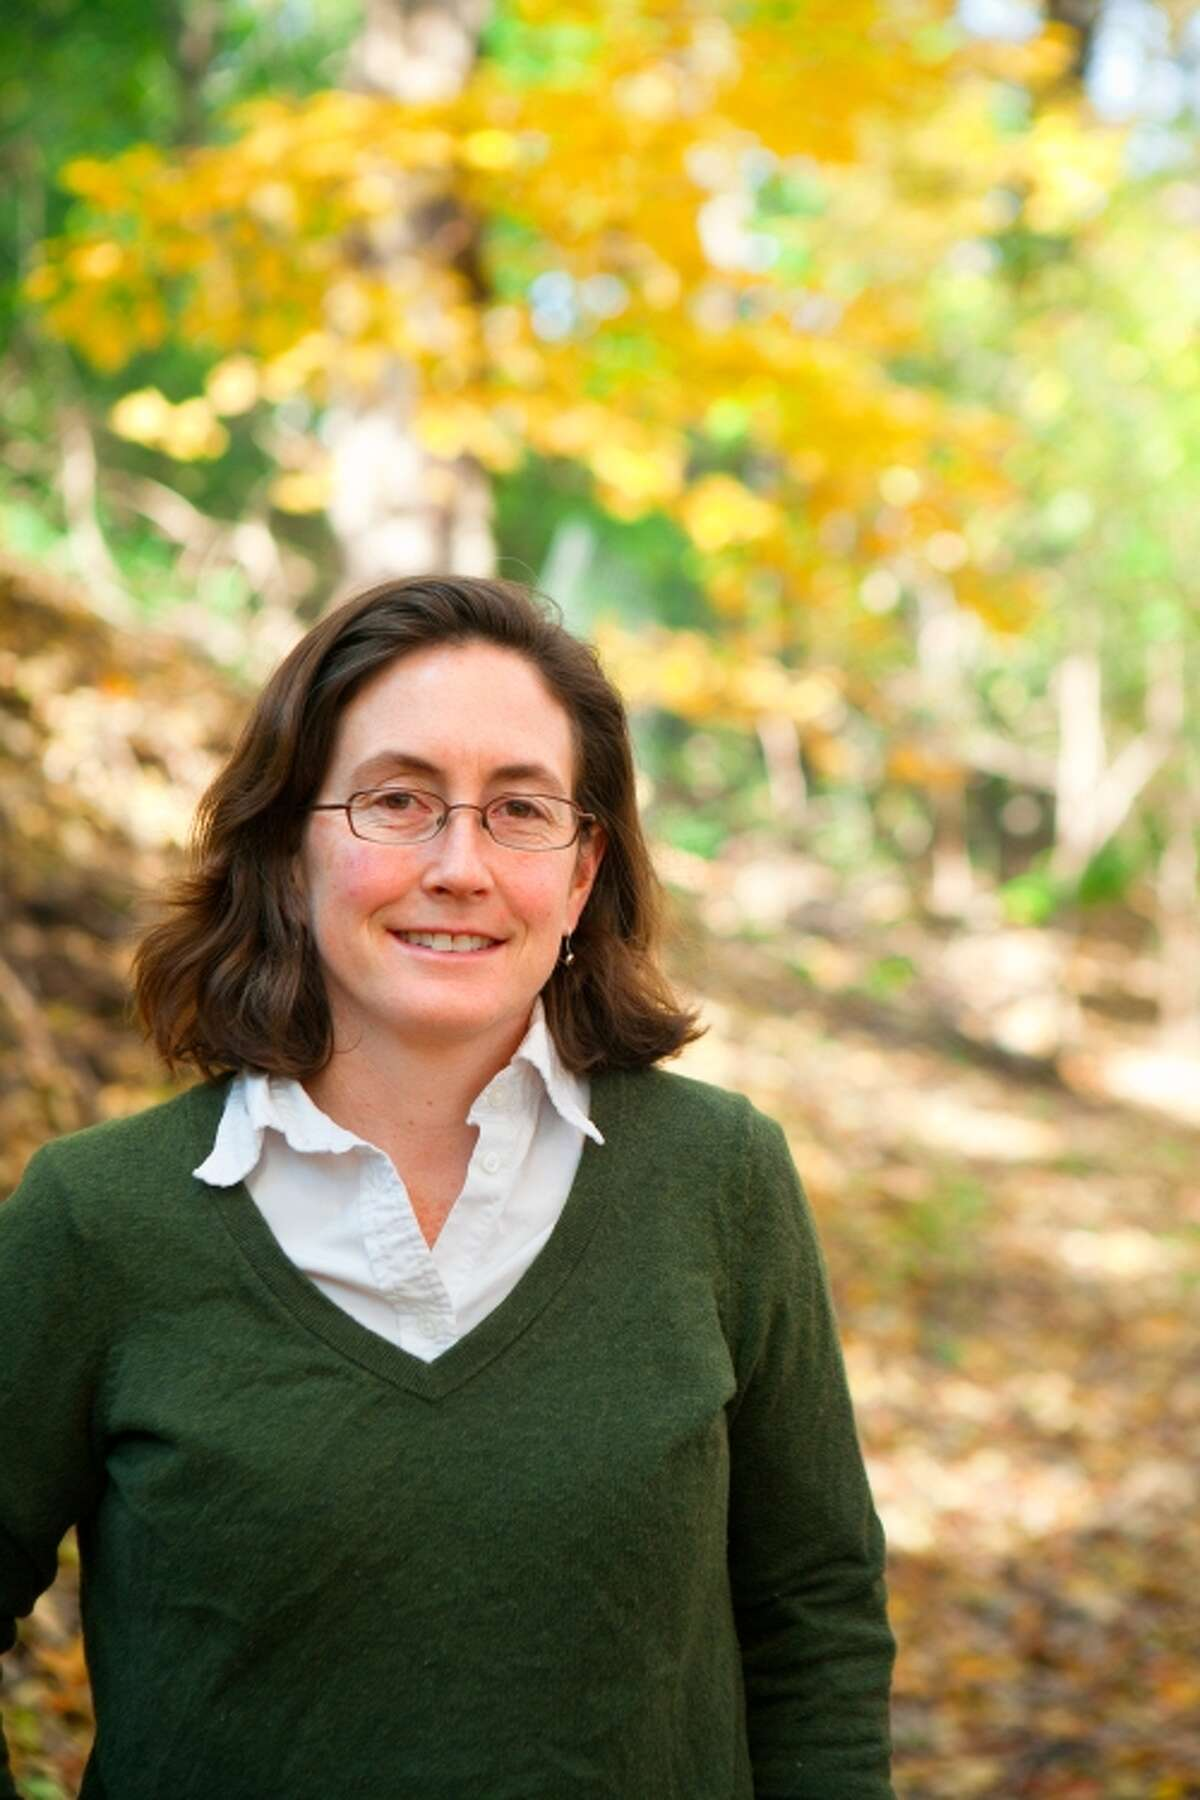 Natalie Mahowald, a climate professor at Cornell University, was one of 91 scientific authors of a United Nations climate report issued this week that said rapid reductions in global greenhouse gas emissions are needed this decade to stave off the worst effects of climate change.